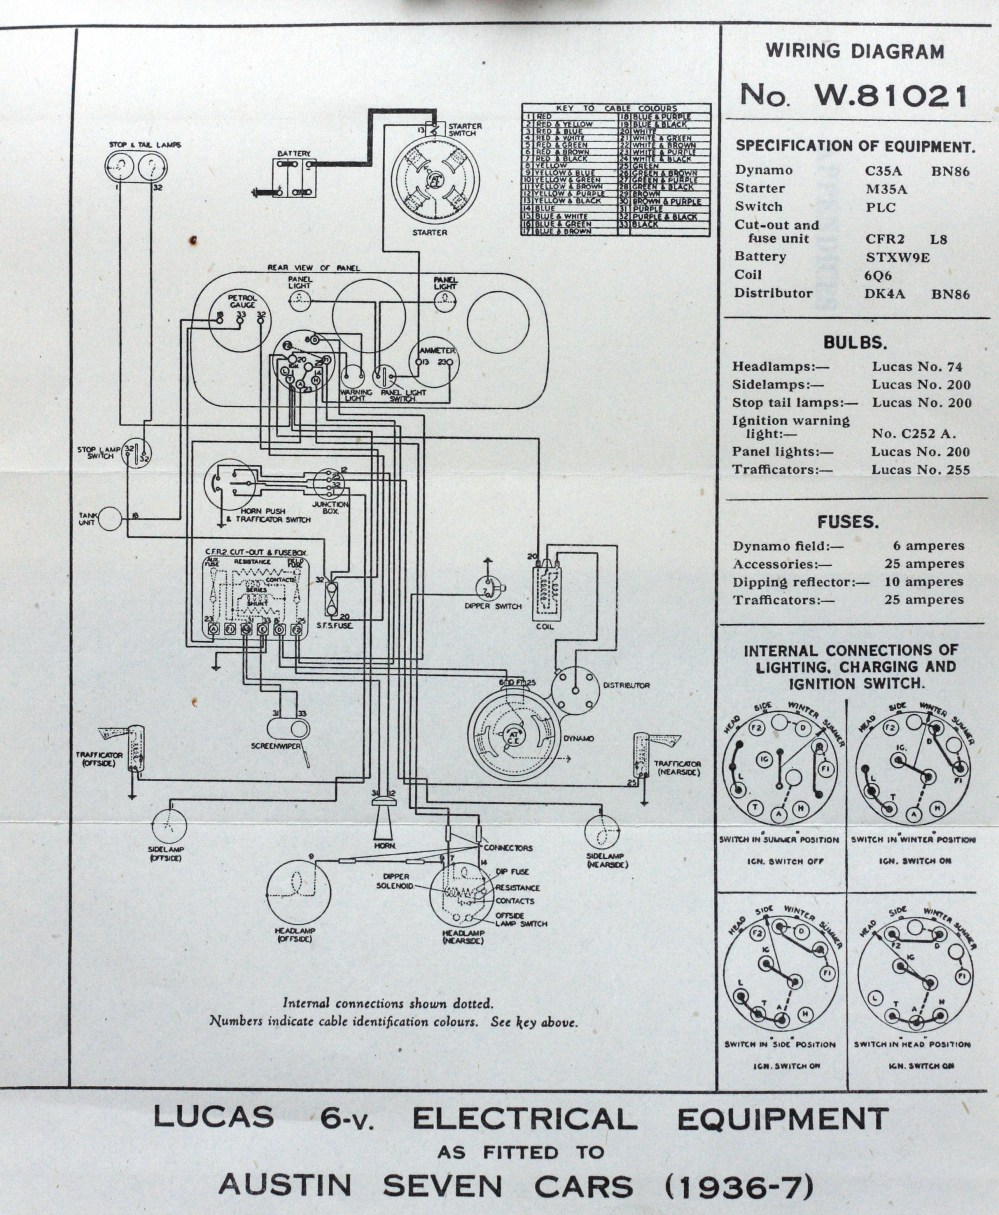 medium resolution of austin seven lucas wiring diagram u2013 austin 65 nippy archiveaustin seven lucas wiring diagram